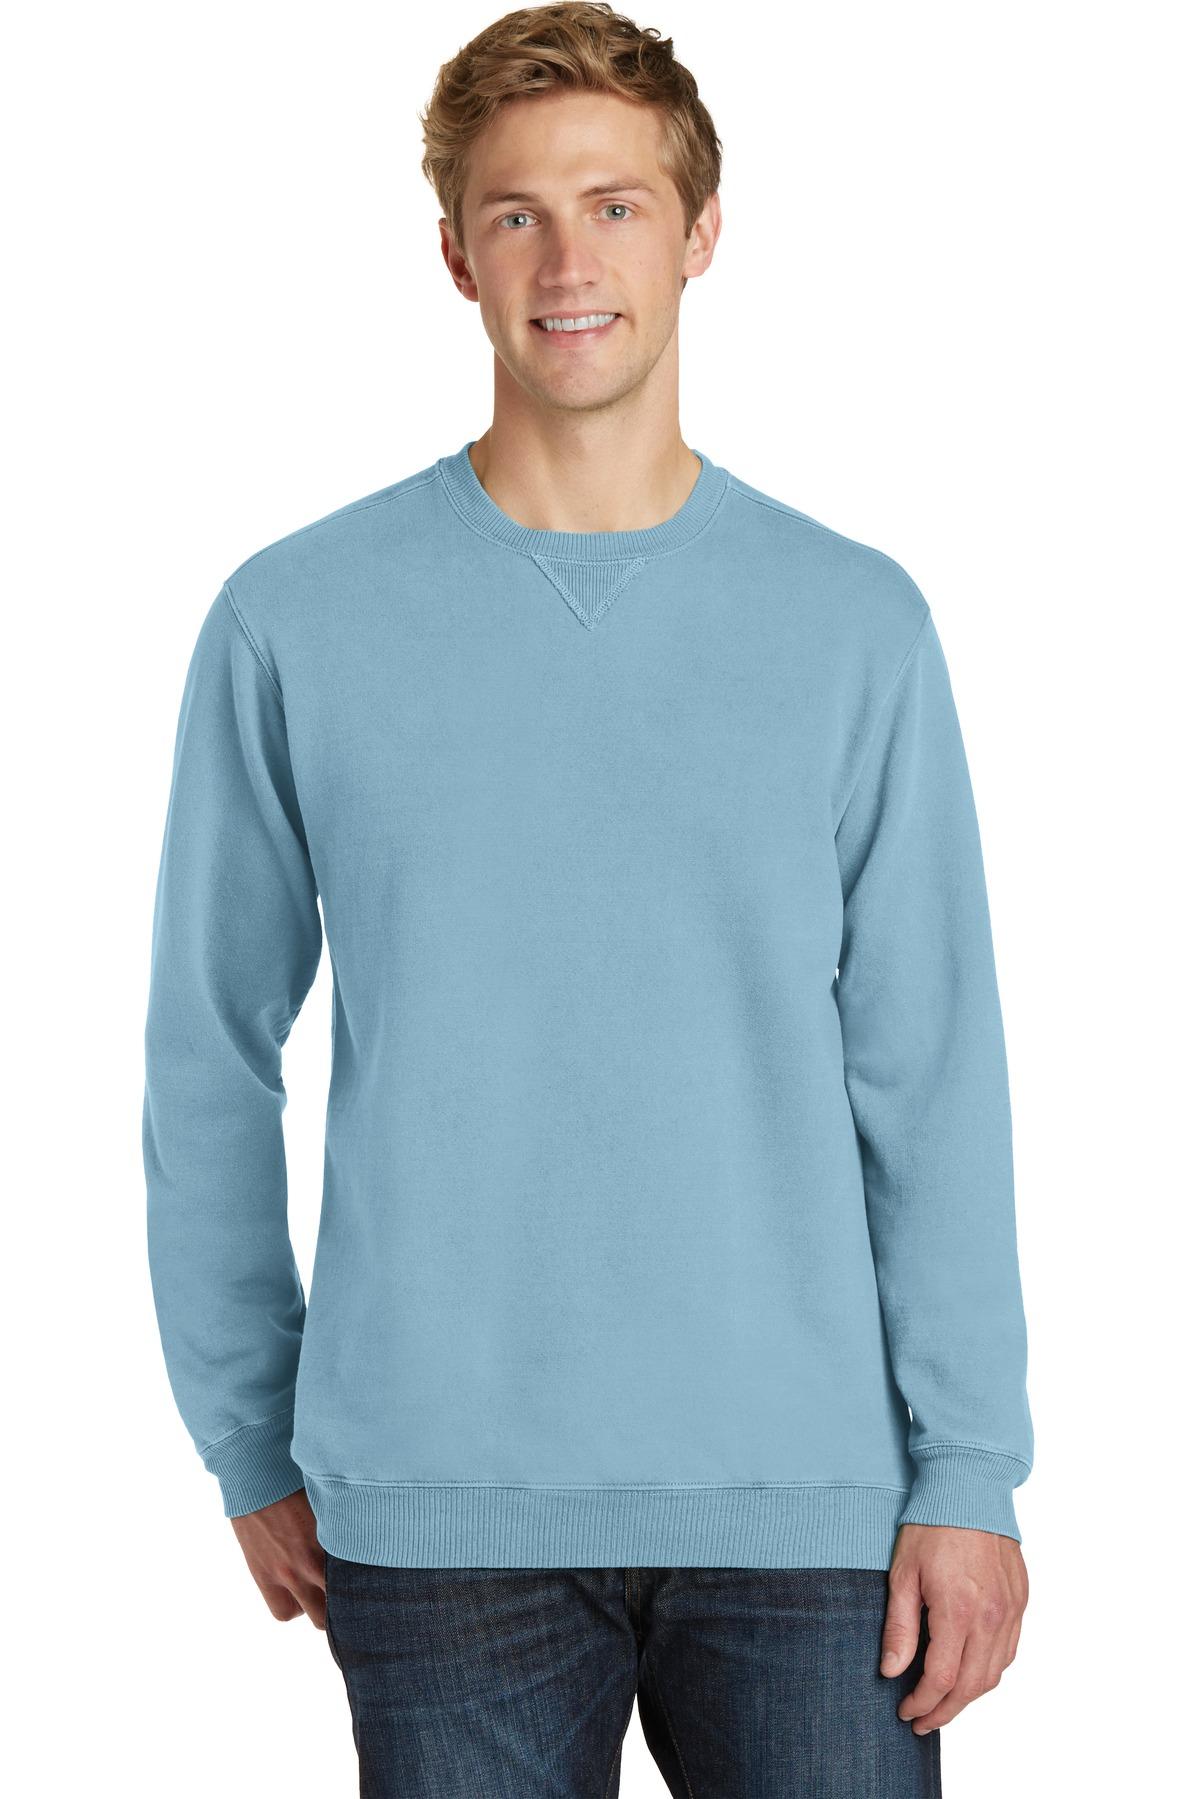 Port & Company ®  Beach Wash ™  Garment-Dyed Sweatshirt PC098 - Mist